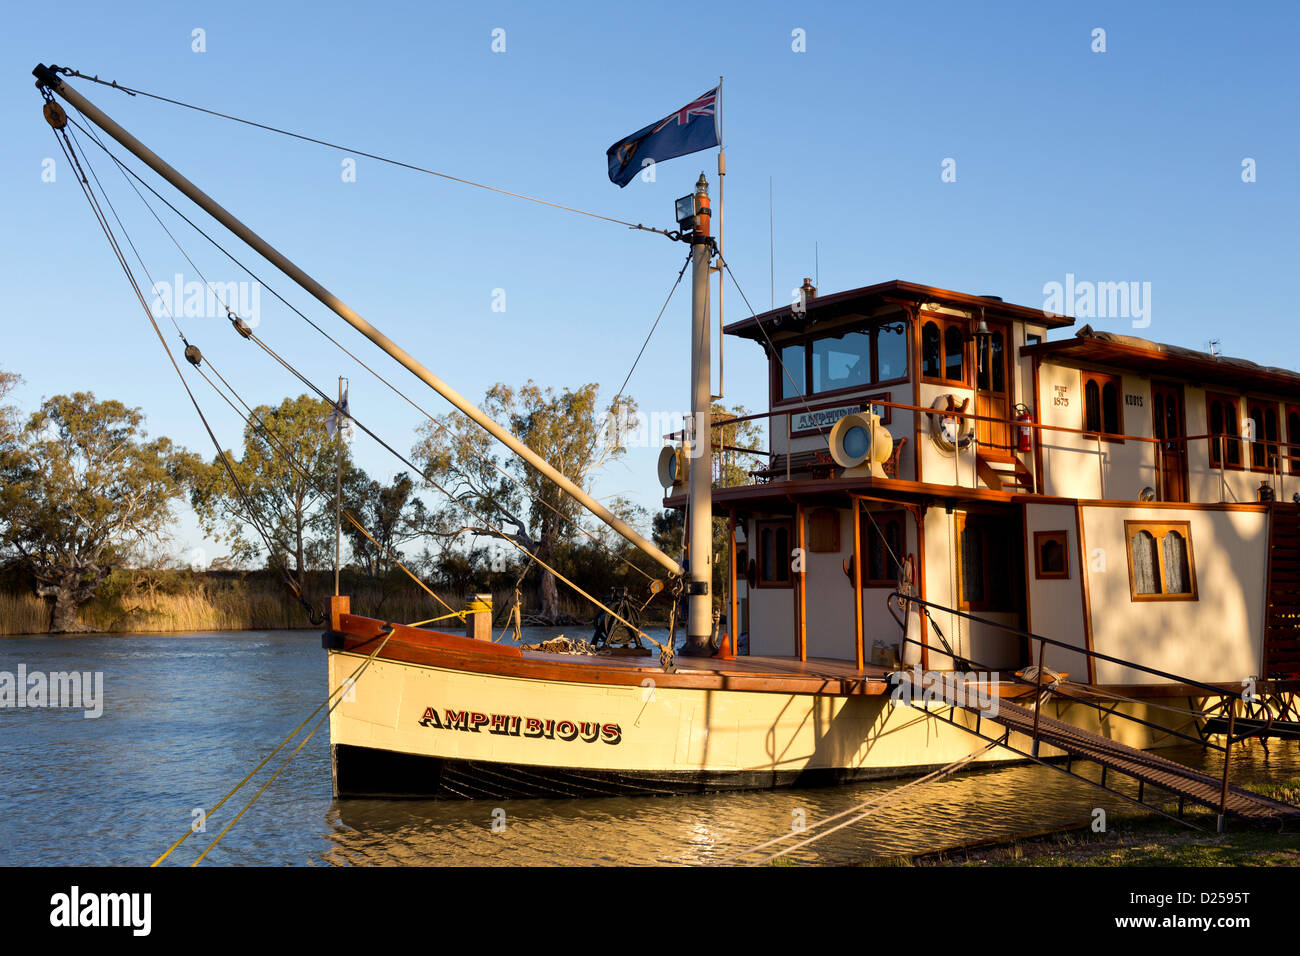 PB Amphibious side wheeler paddle boat moored on the Darling River at Wentworth. - Stock Image